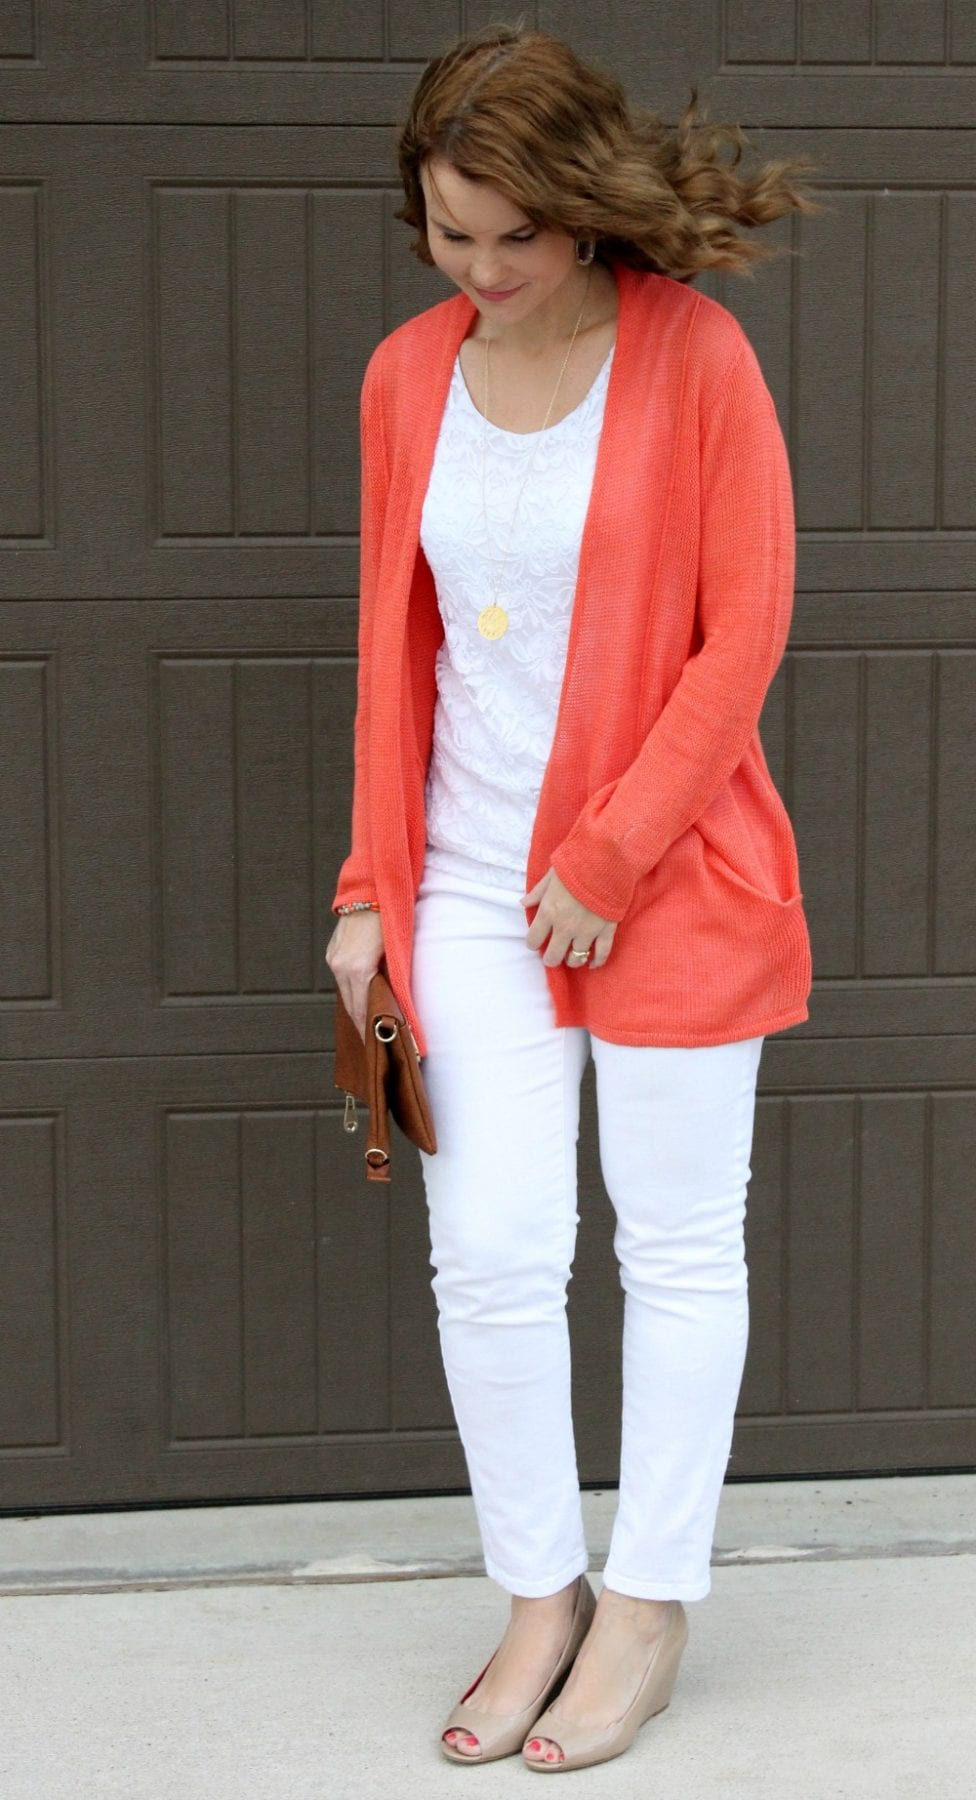 Spring outfit idea - nude patent wedges, white denim, white lace top and a coal cardigan.